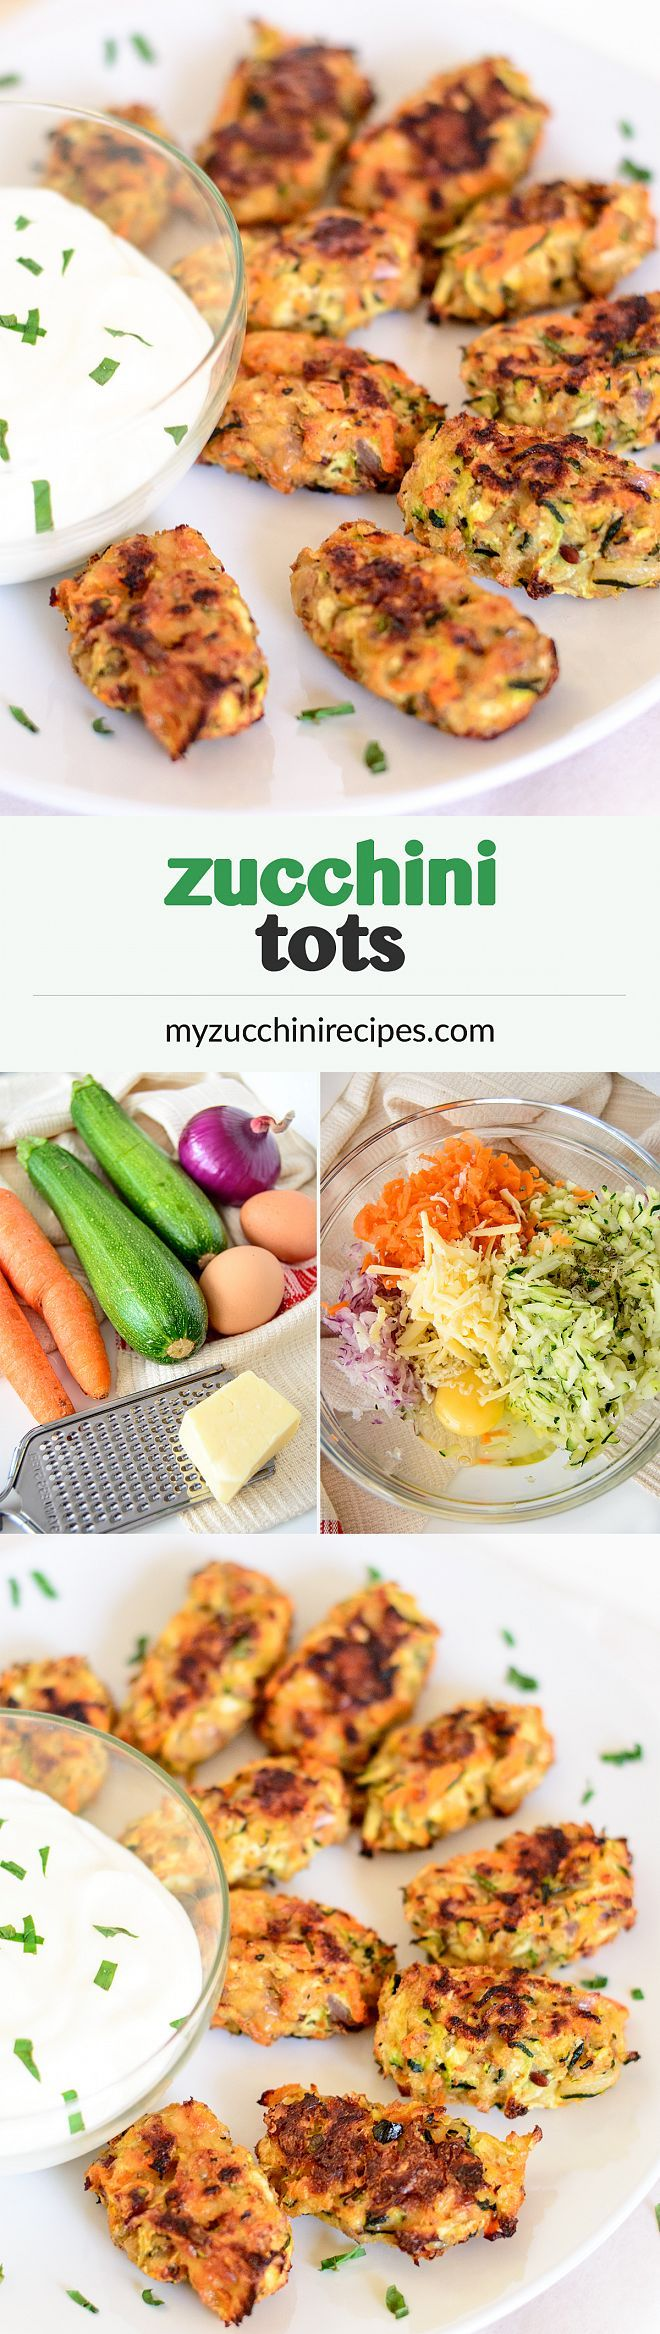 Zucchini tots loaded with carrots, onion and cheese - a great & healthy oven baked veggie snacks | myzucchinirecipes.com